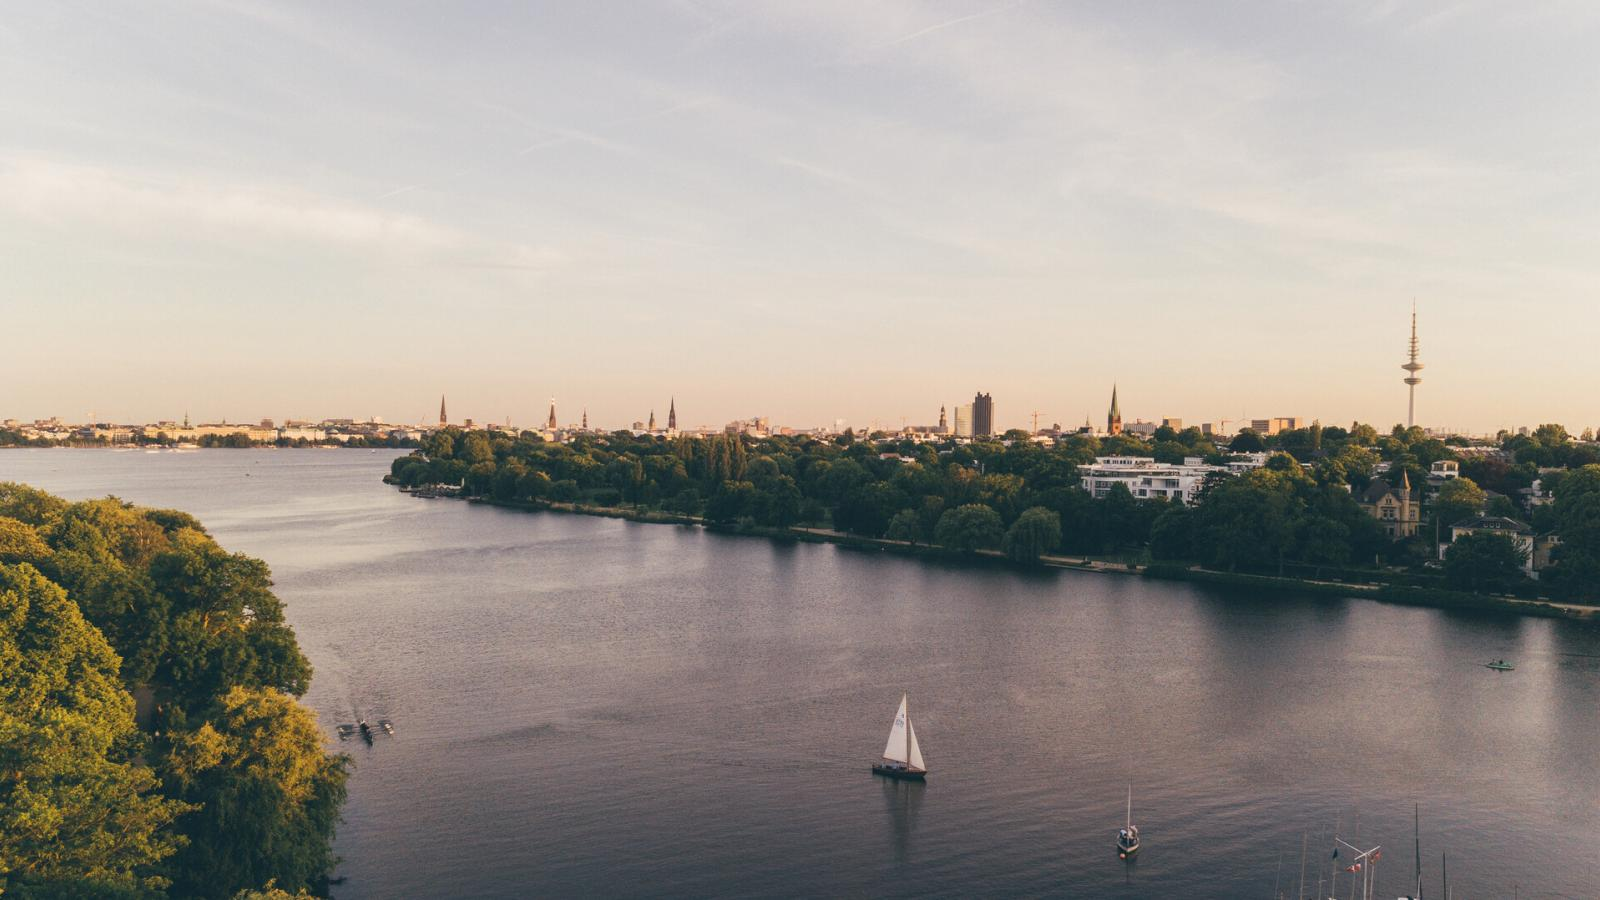 Aerial view of Outer Lake Alster